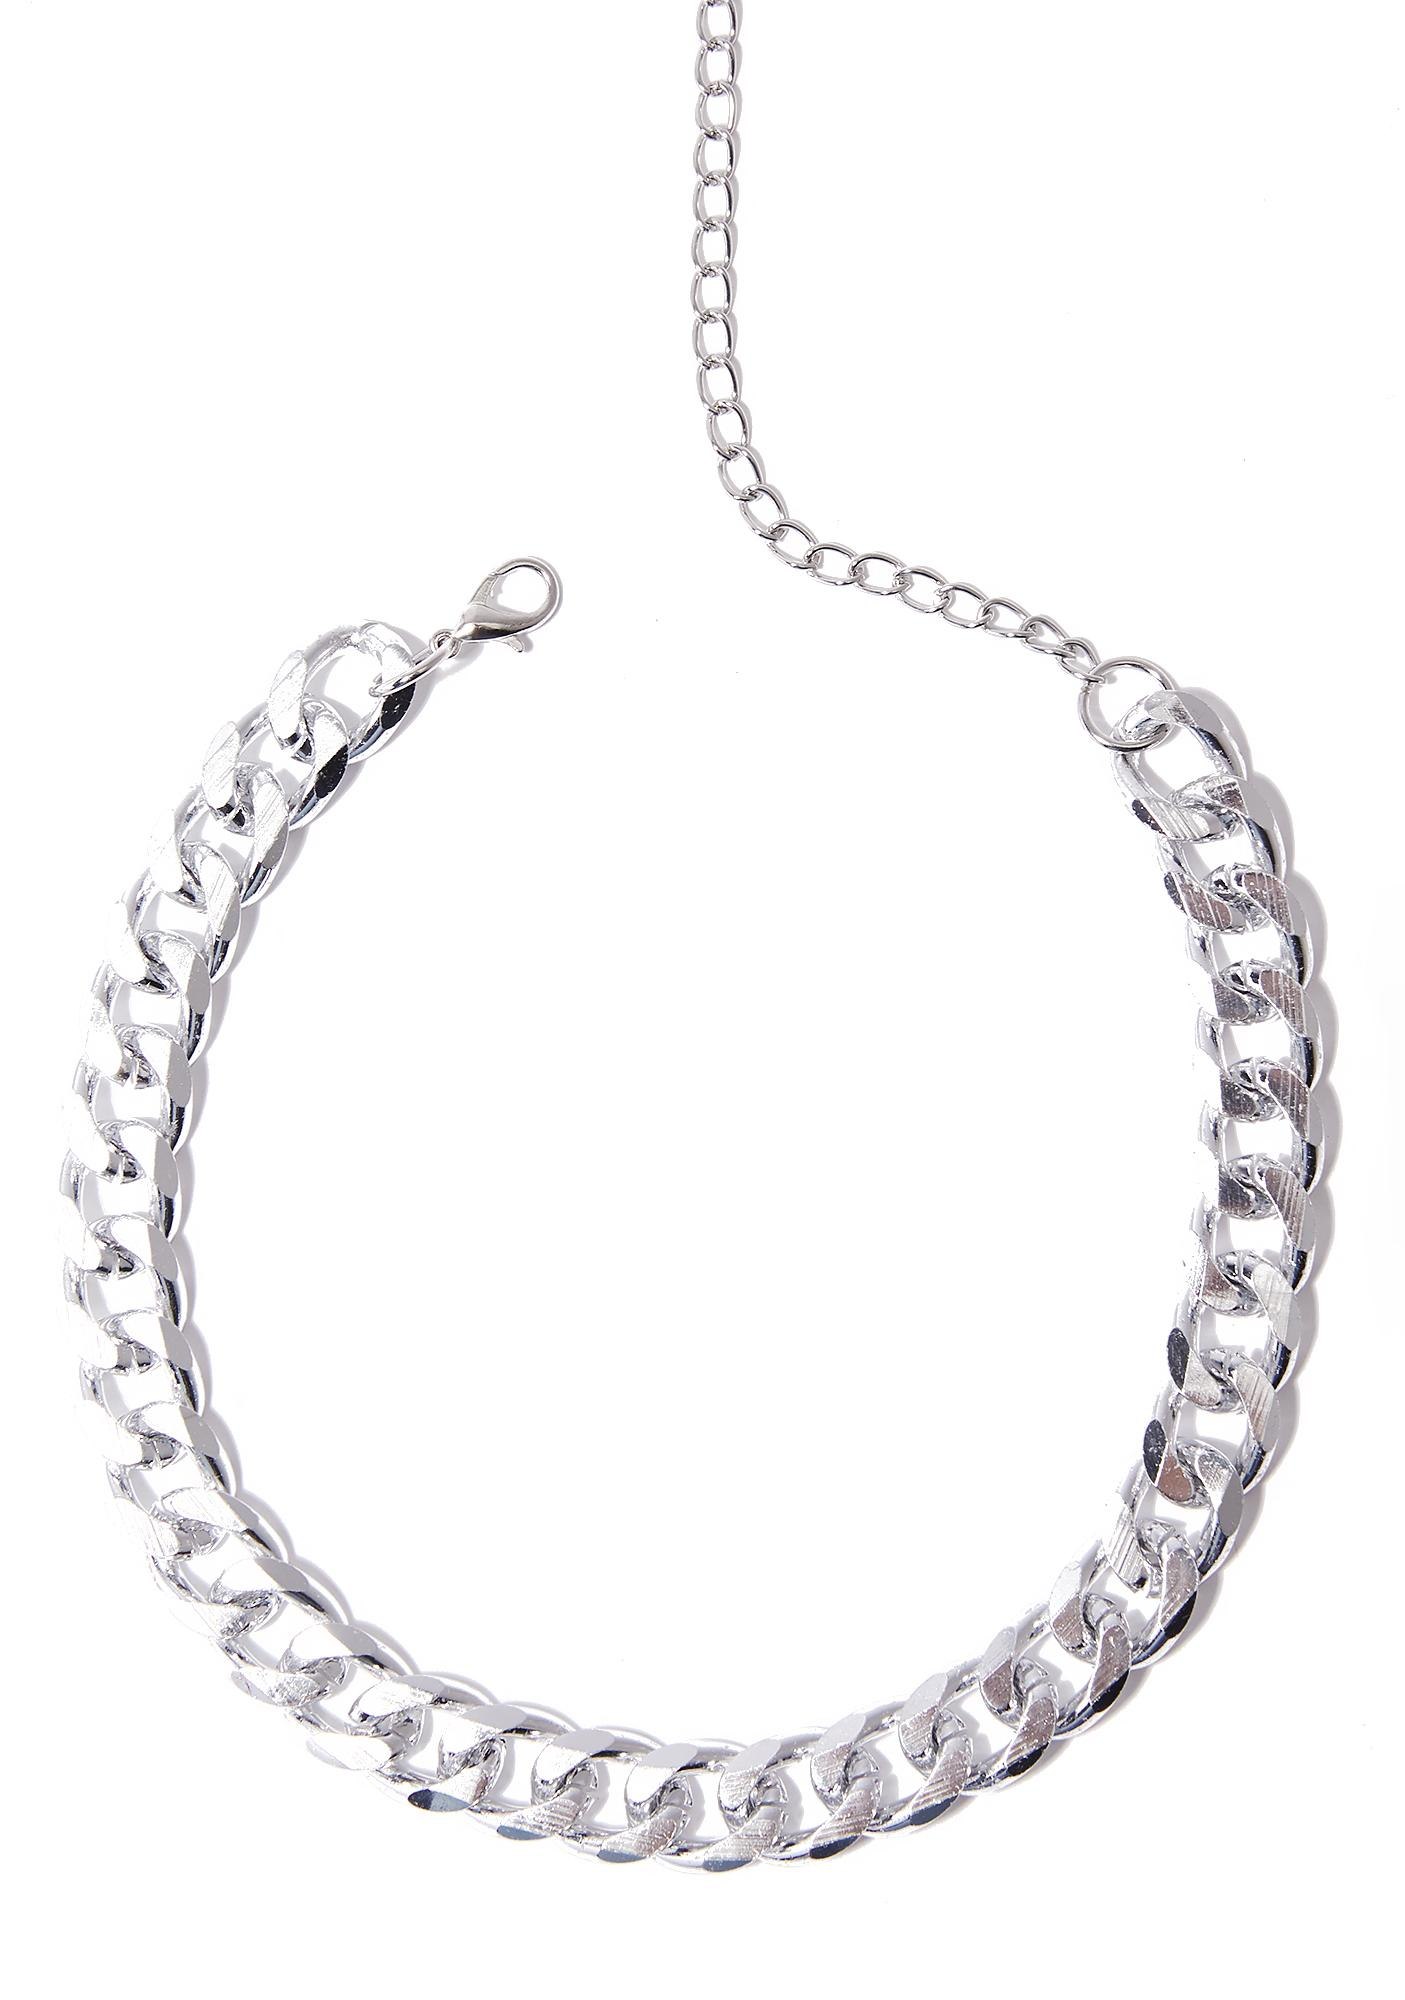 Bull Dawg Chain Necklace